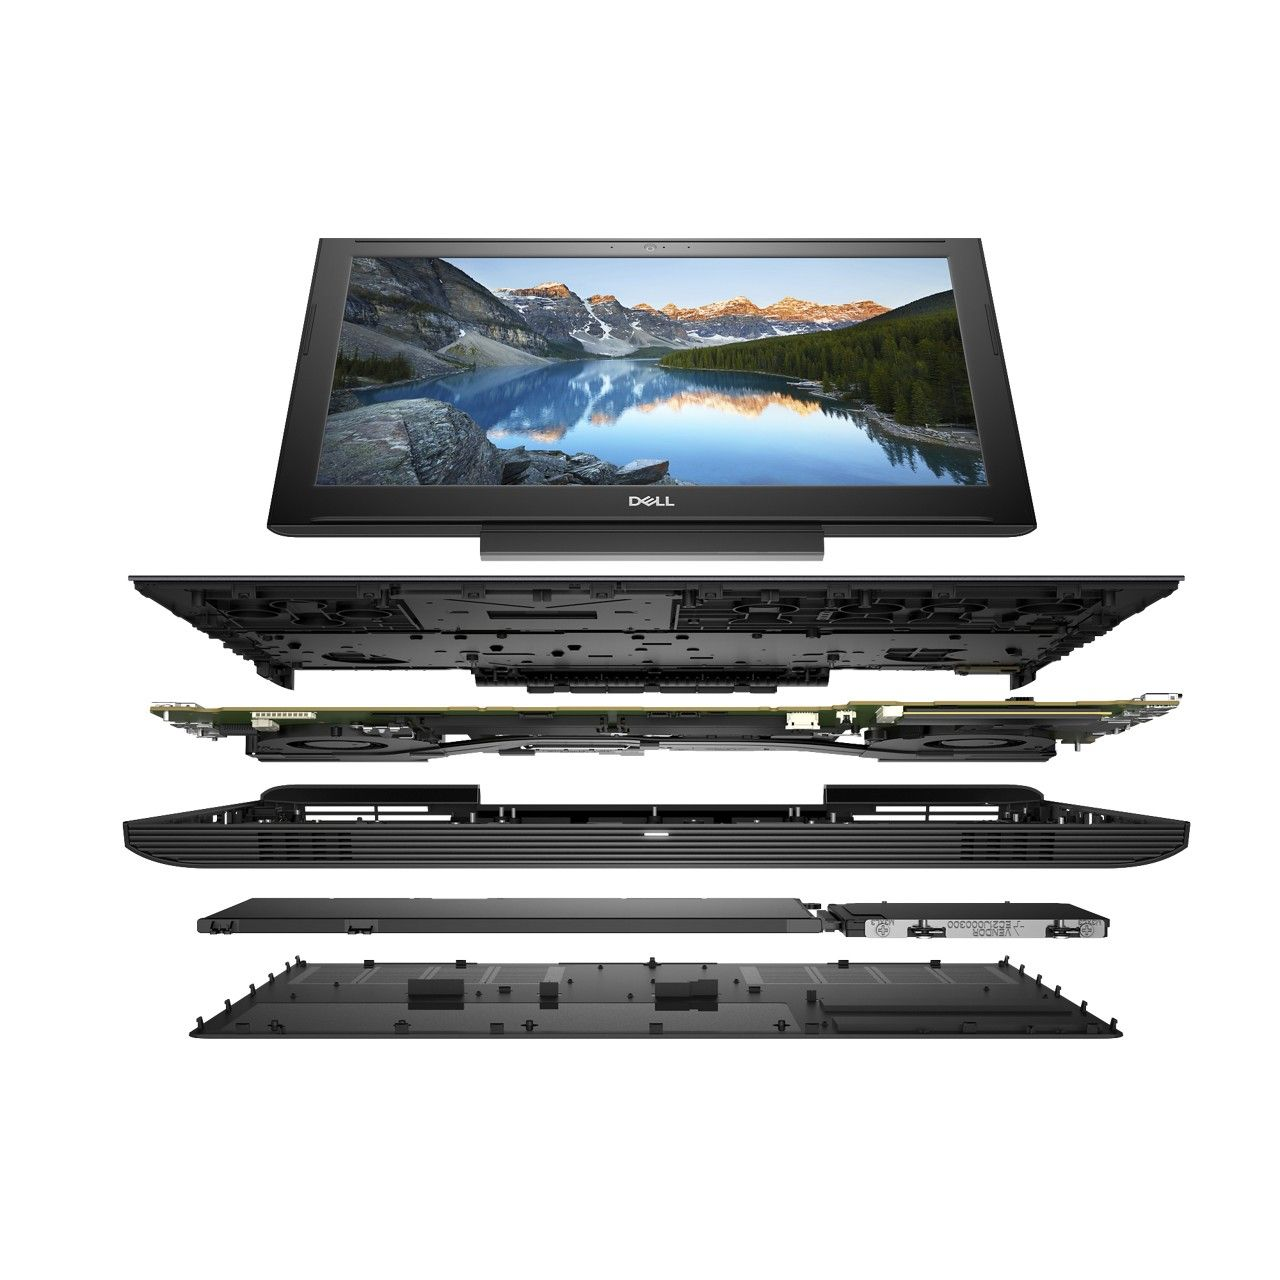 Dell G5 Gaming Laptop 15 6 Full Hd Intel Core I7 8750h Nvidia Geforce Gtx 1050 Ti 4gb 1tb Hdd 128gb Ssd Storage Dell Laptops Best Gaming Laptop Laptop